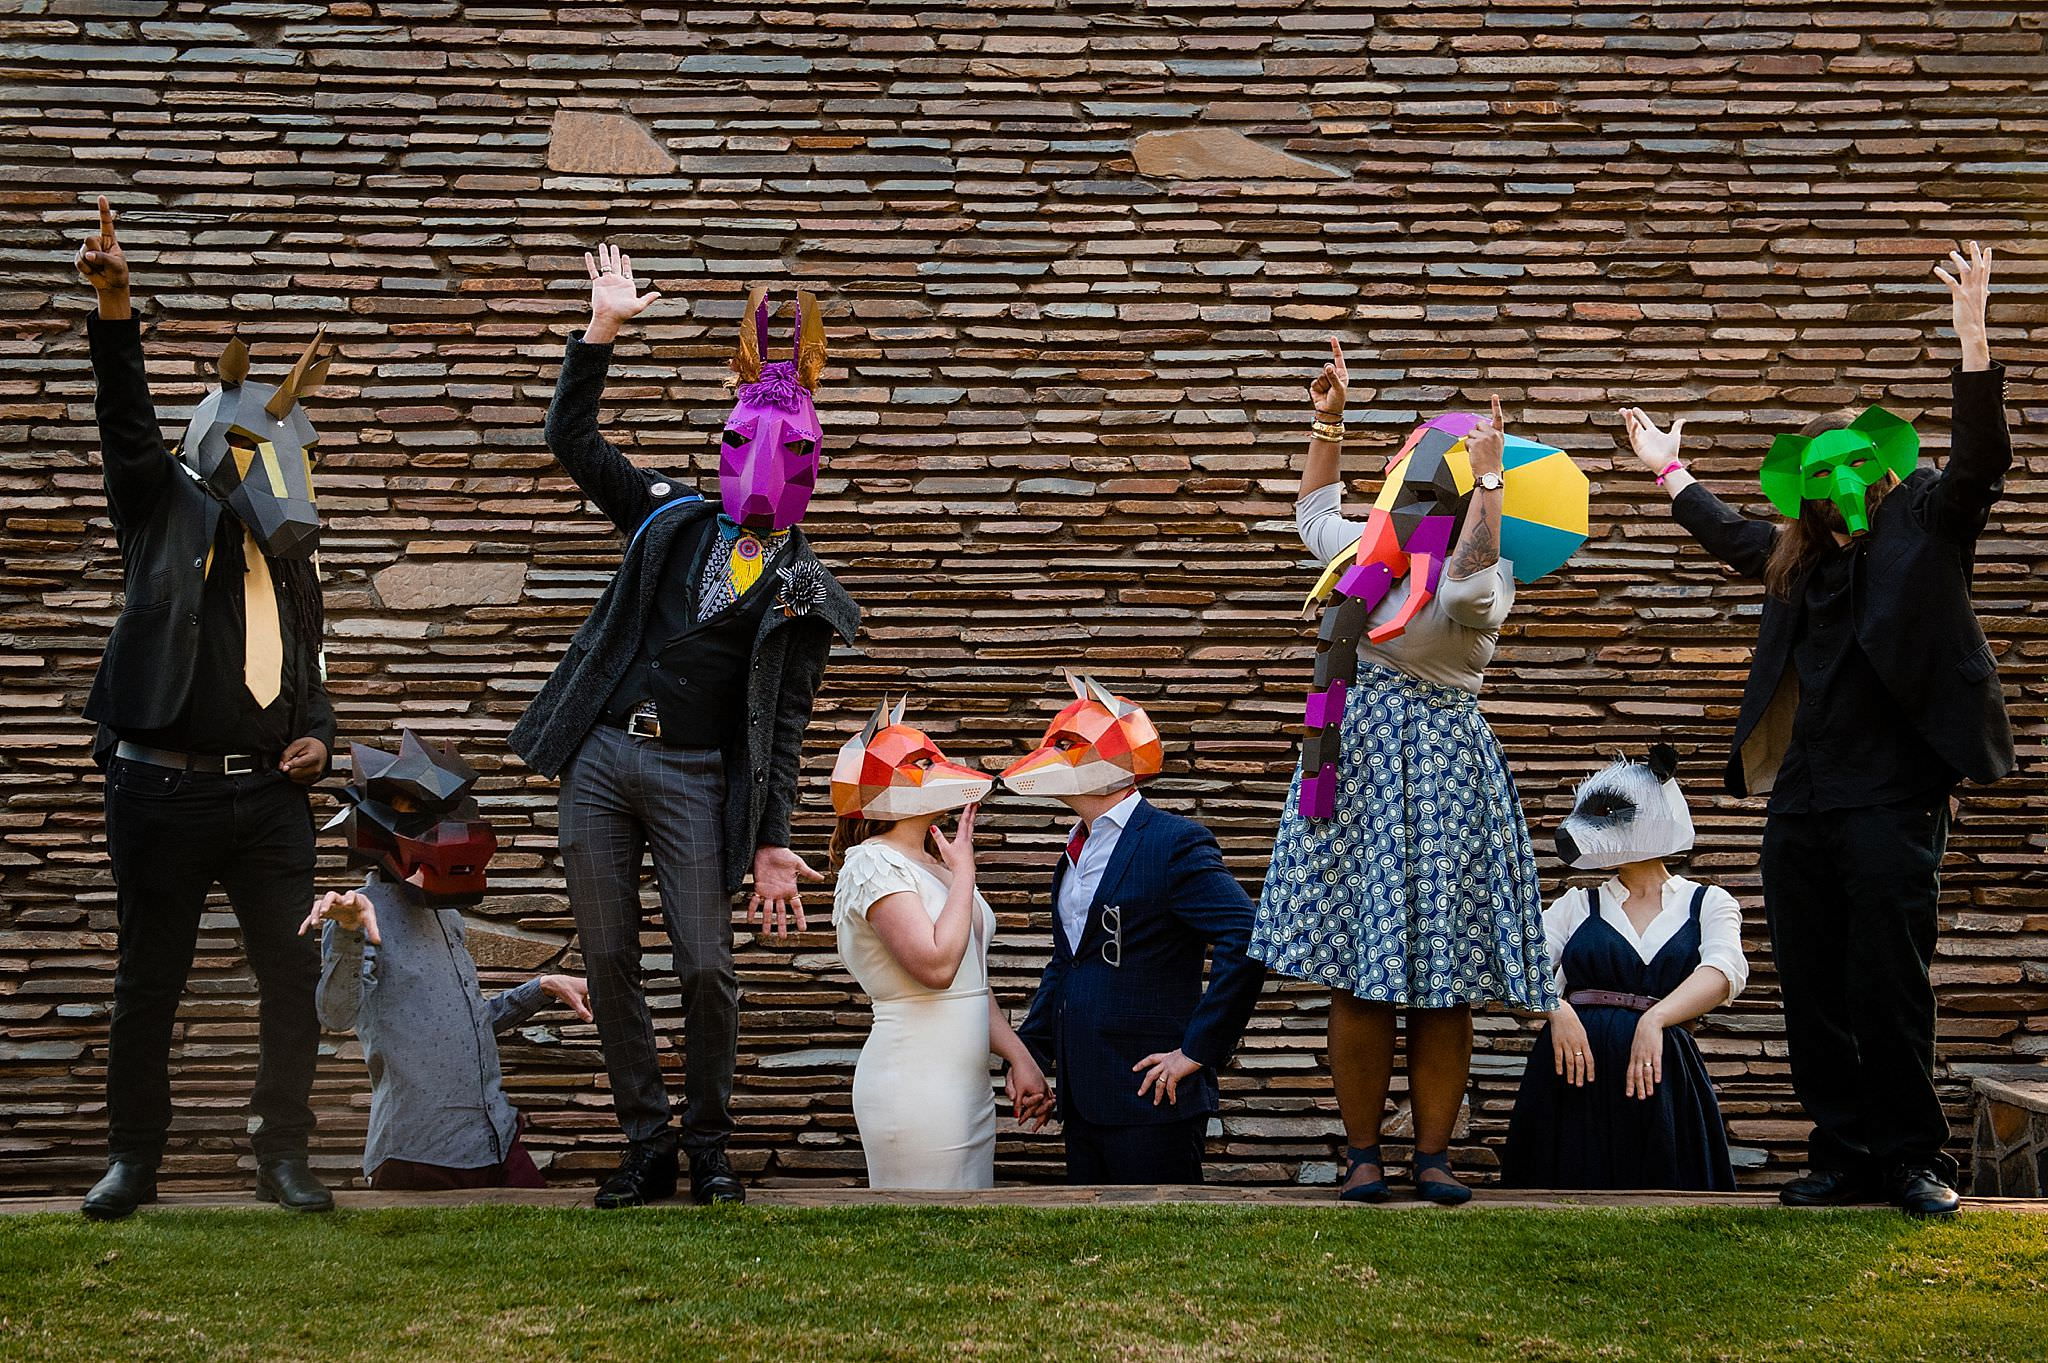 Bridal party wearing animal masks - photo by Jacki Bruniquel - South Africa